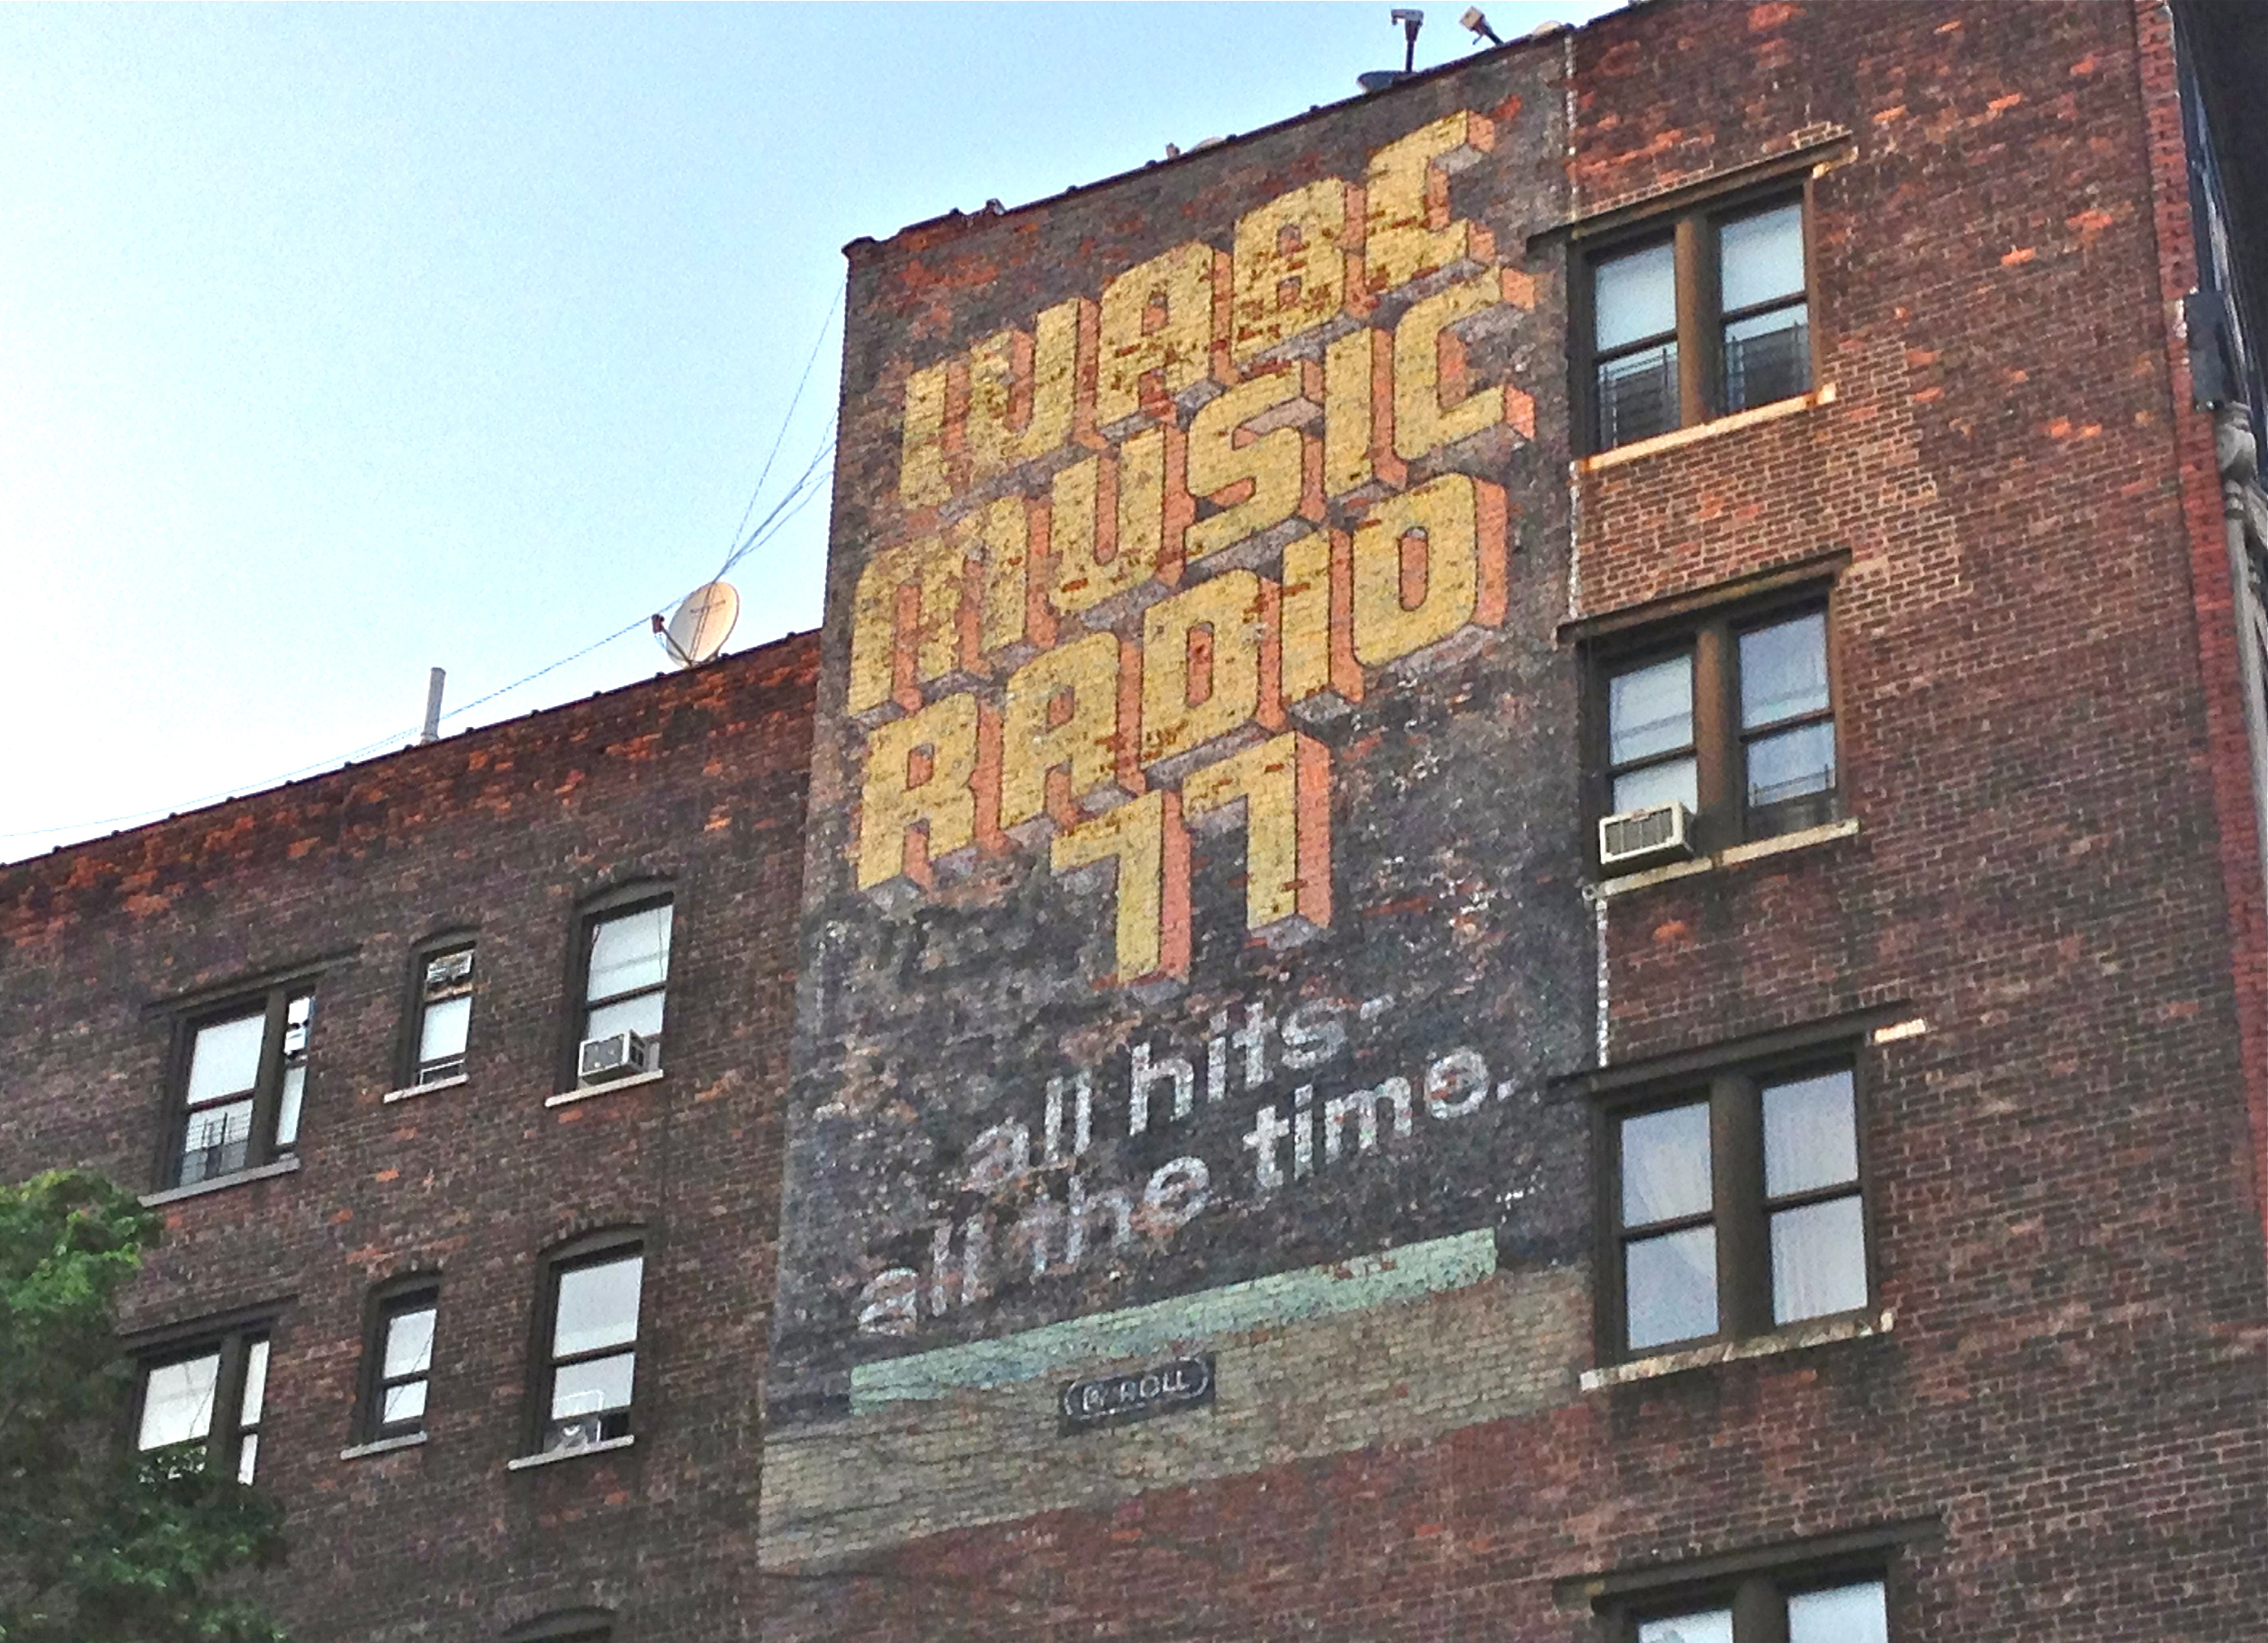 77radiofadedad faded ads in New York City  Ephemeral